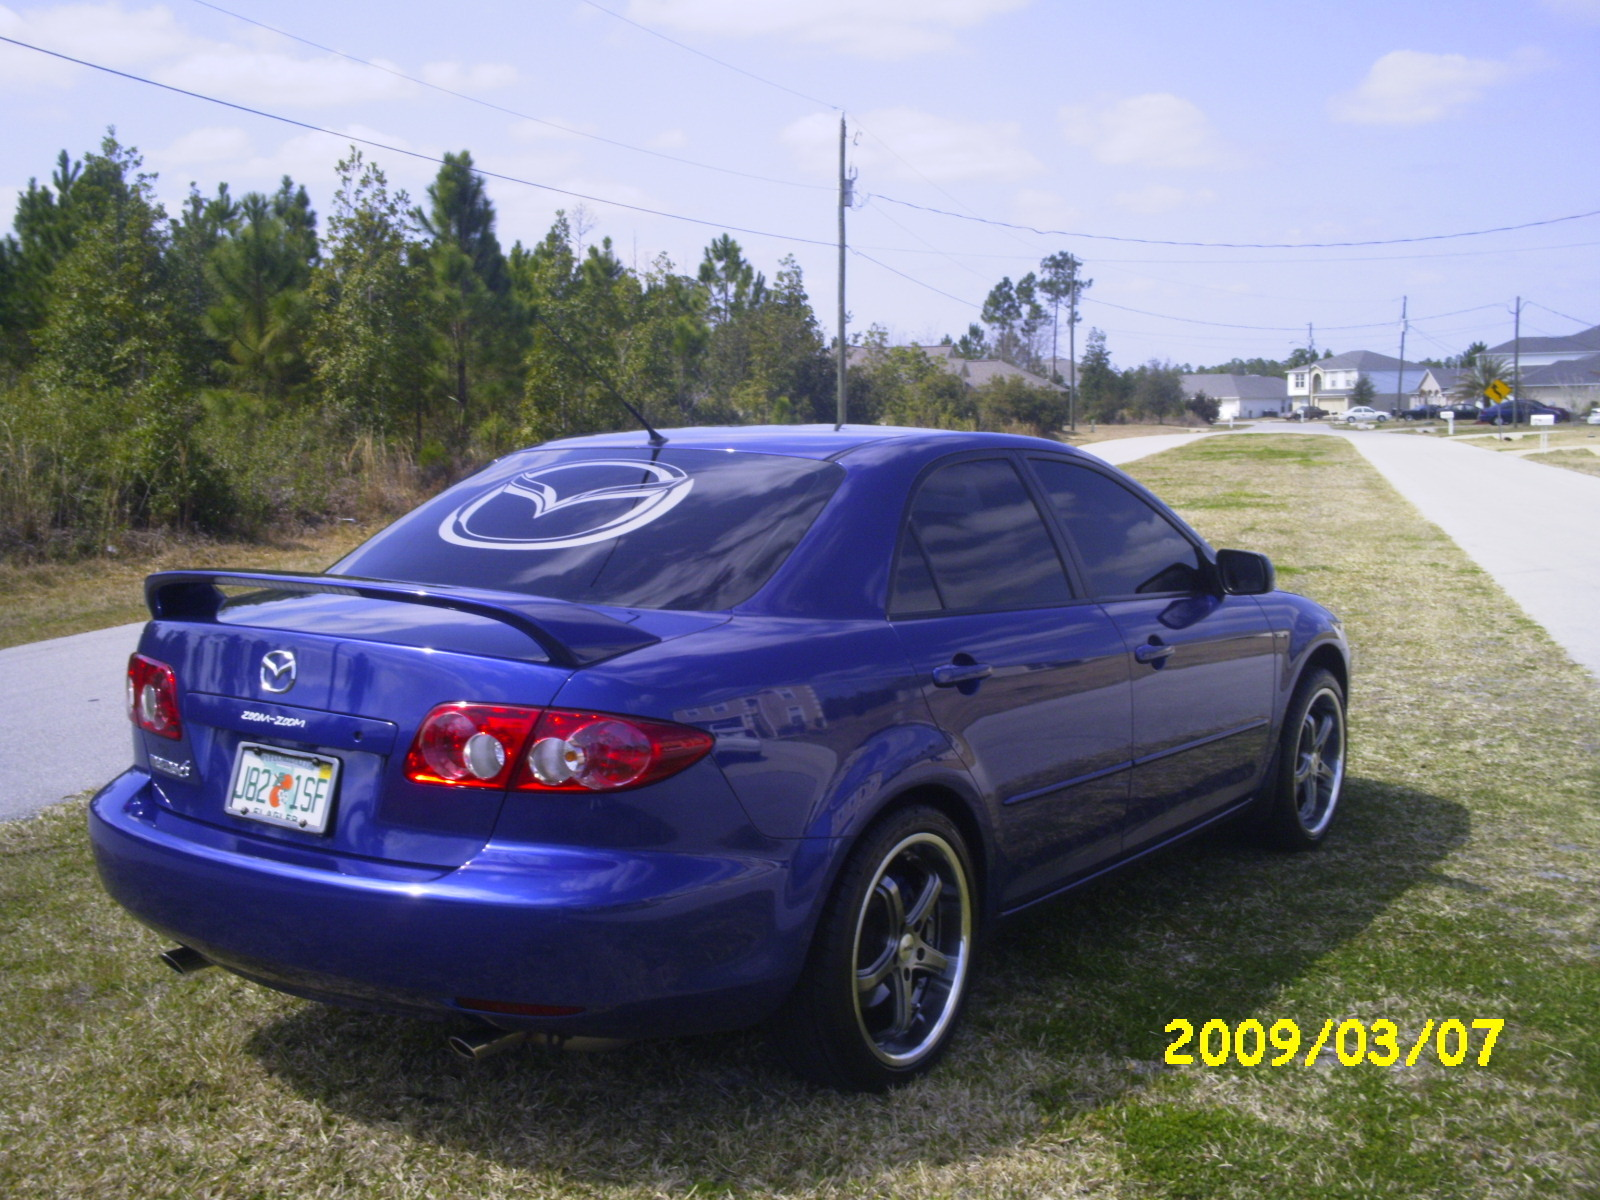 manny2009 39 s 2005 mazda mazda6 in palm coast fl. Black Bedroom Furniture Sets. Home Design Ideas